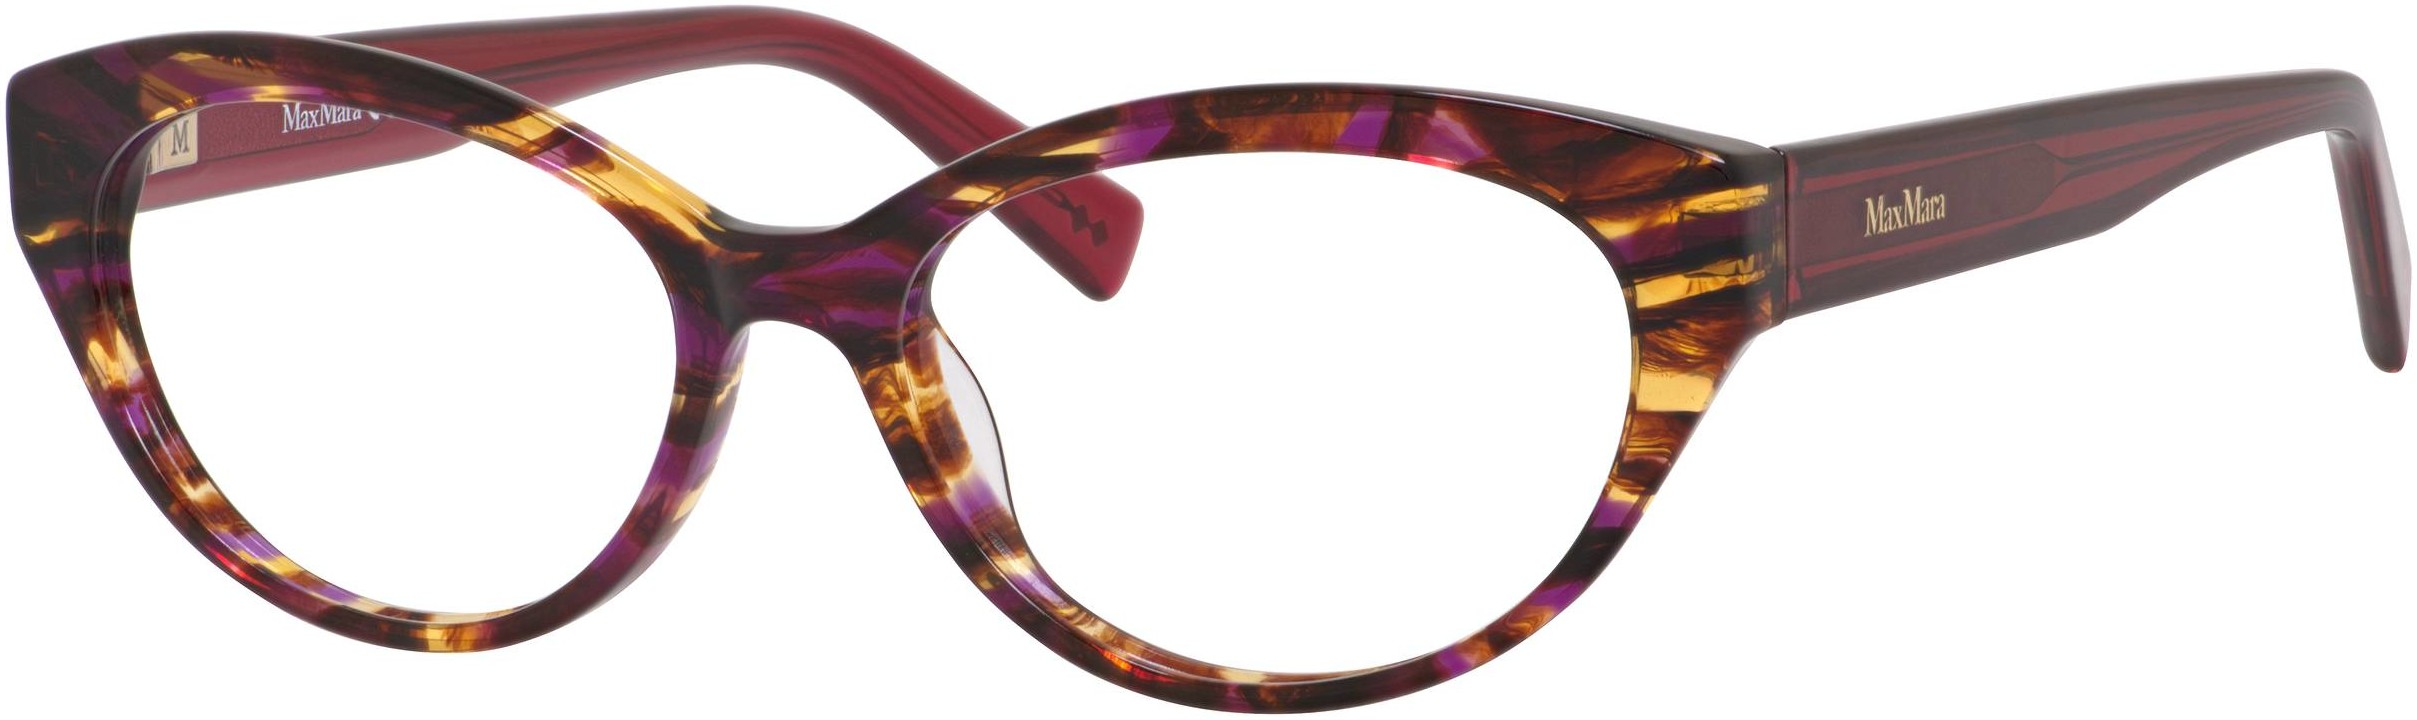 Max Mara cat-eye frames